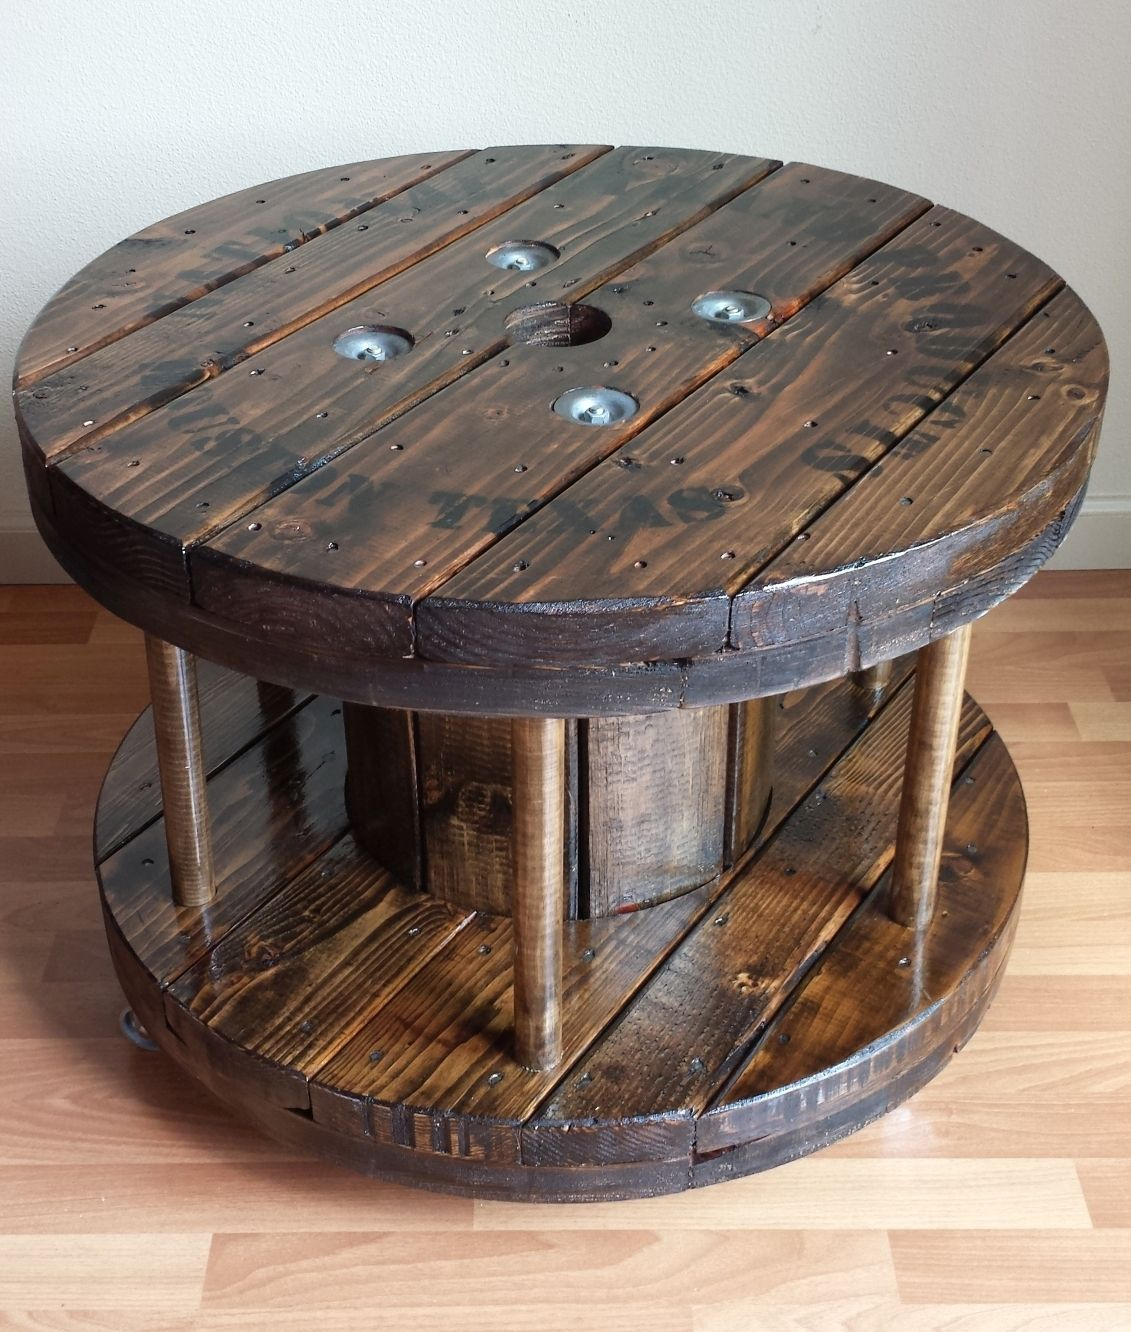 Reclaimed Factory Cable Spool Coffee Table Bookshelf With Wood Dowels On Casters